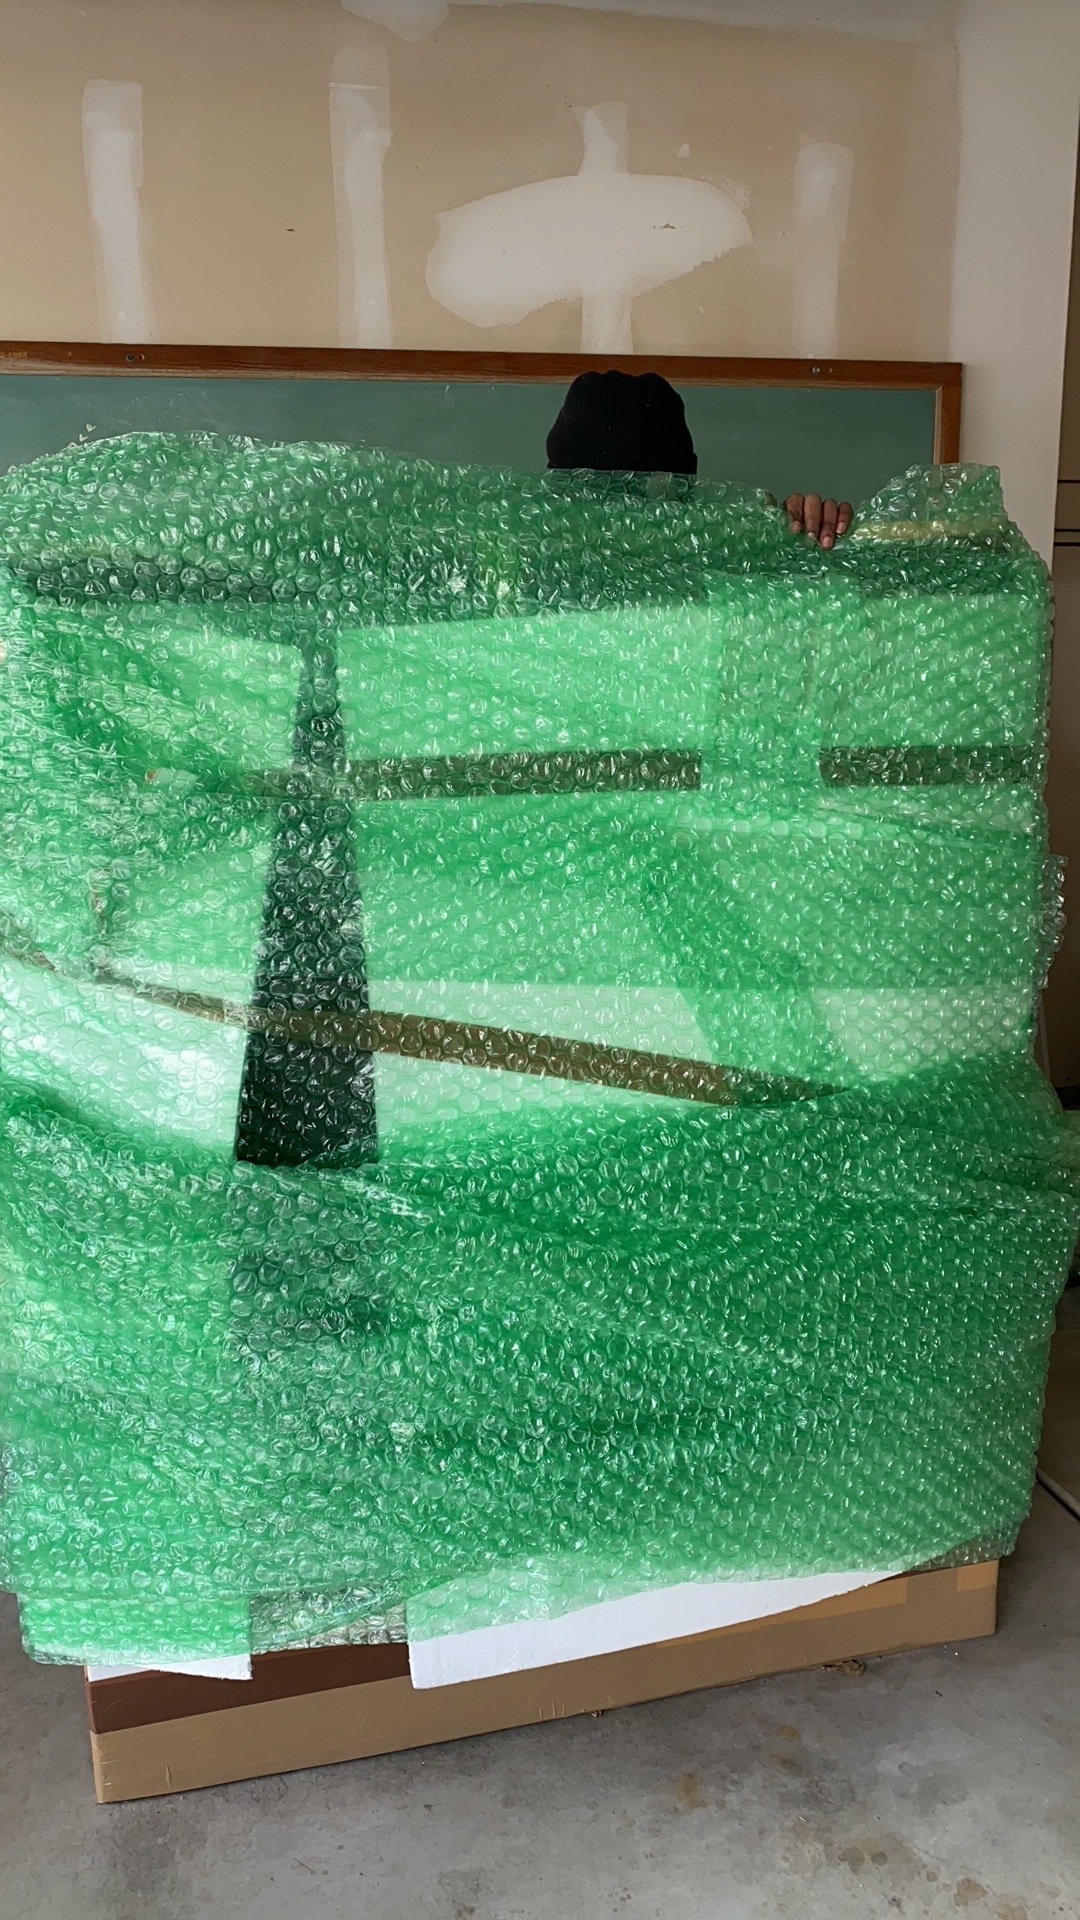 Packing and moving fragile glass and art objects